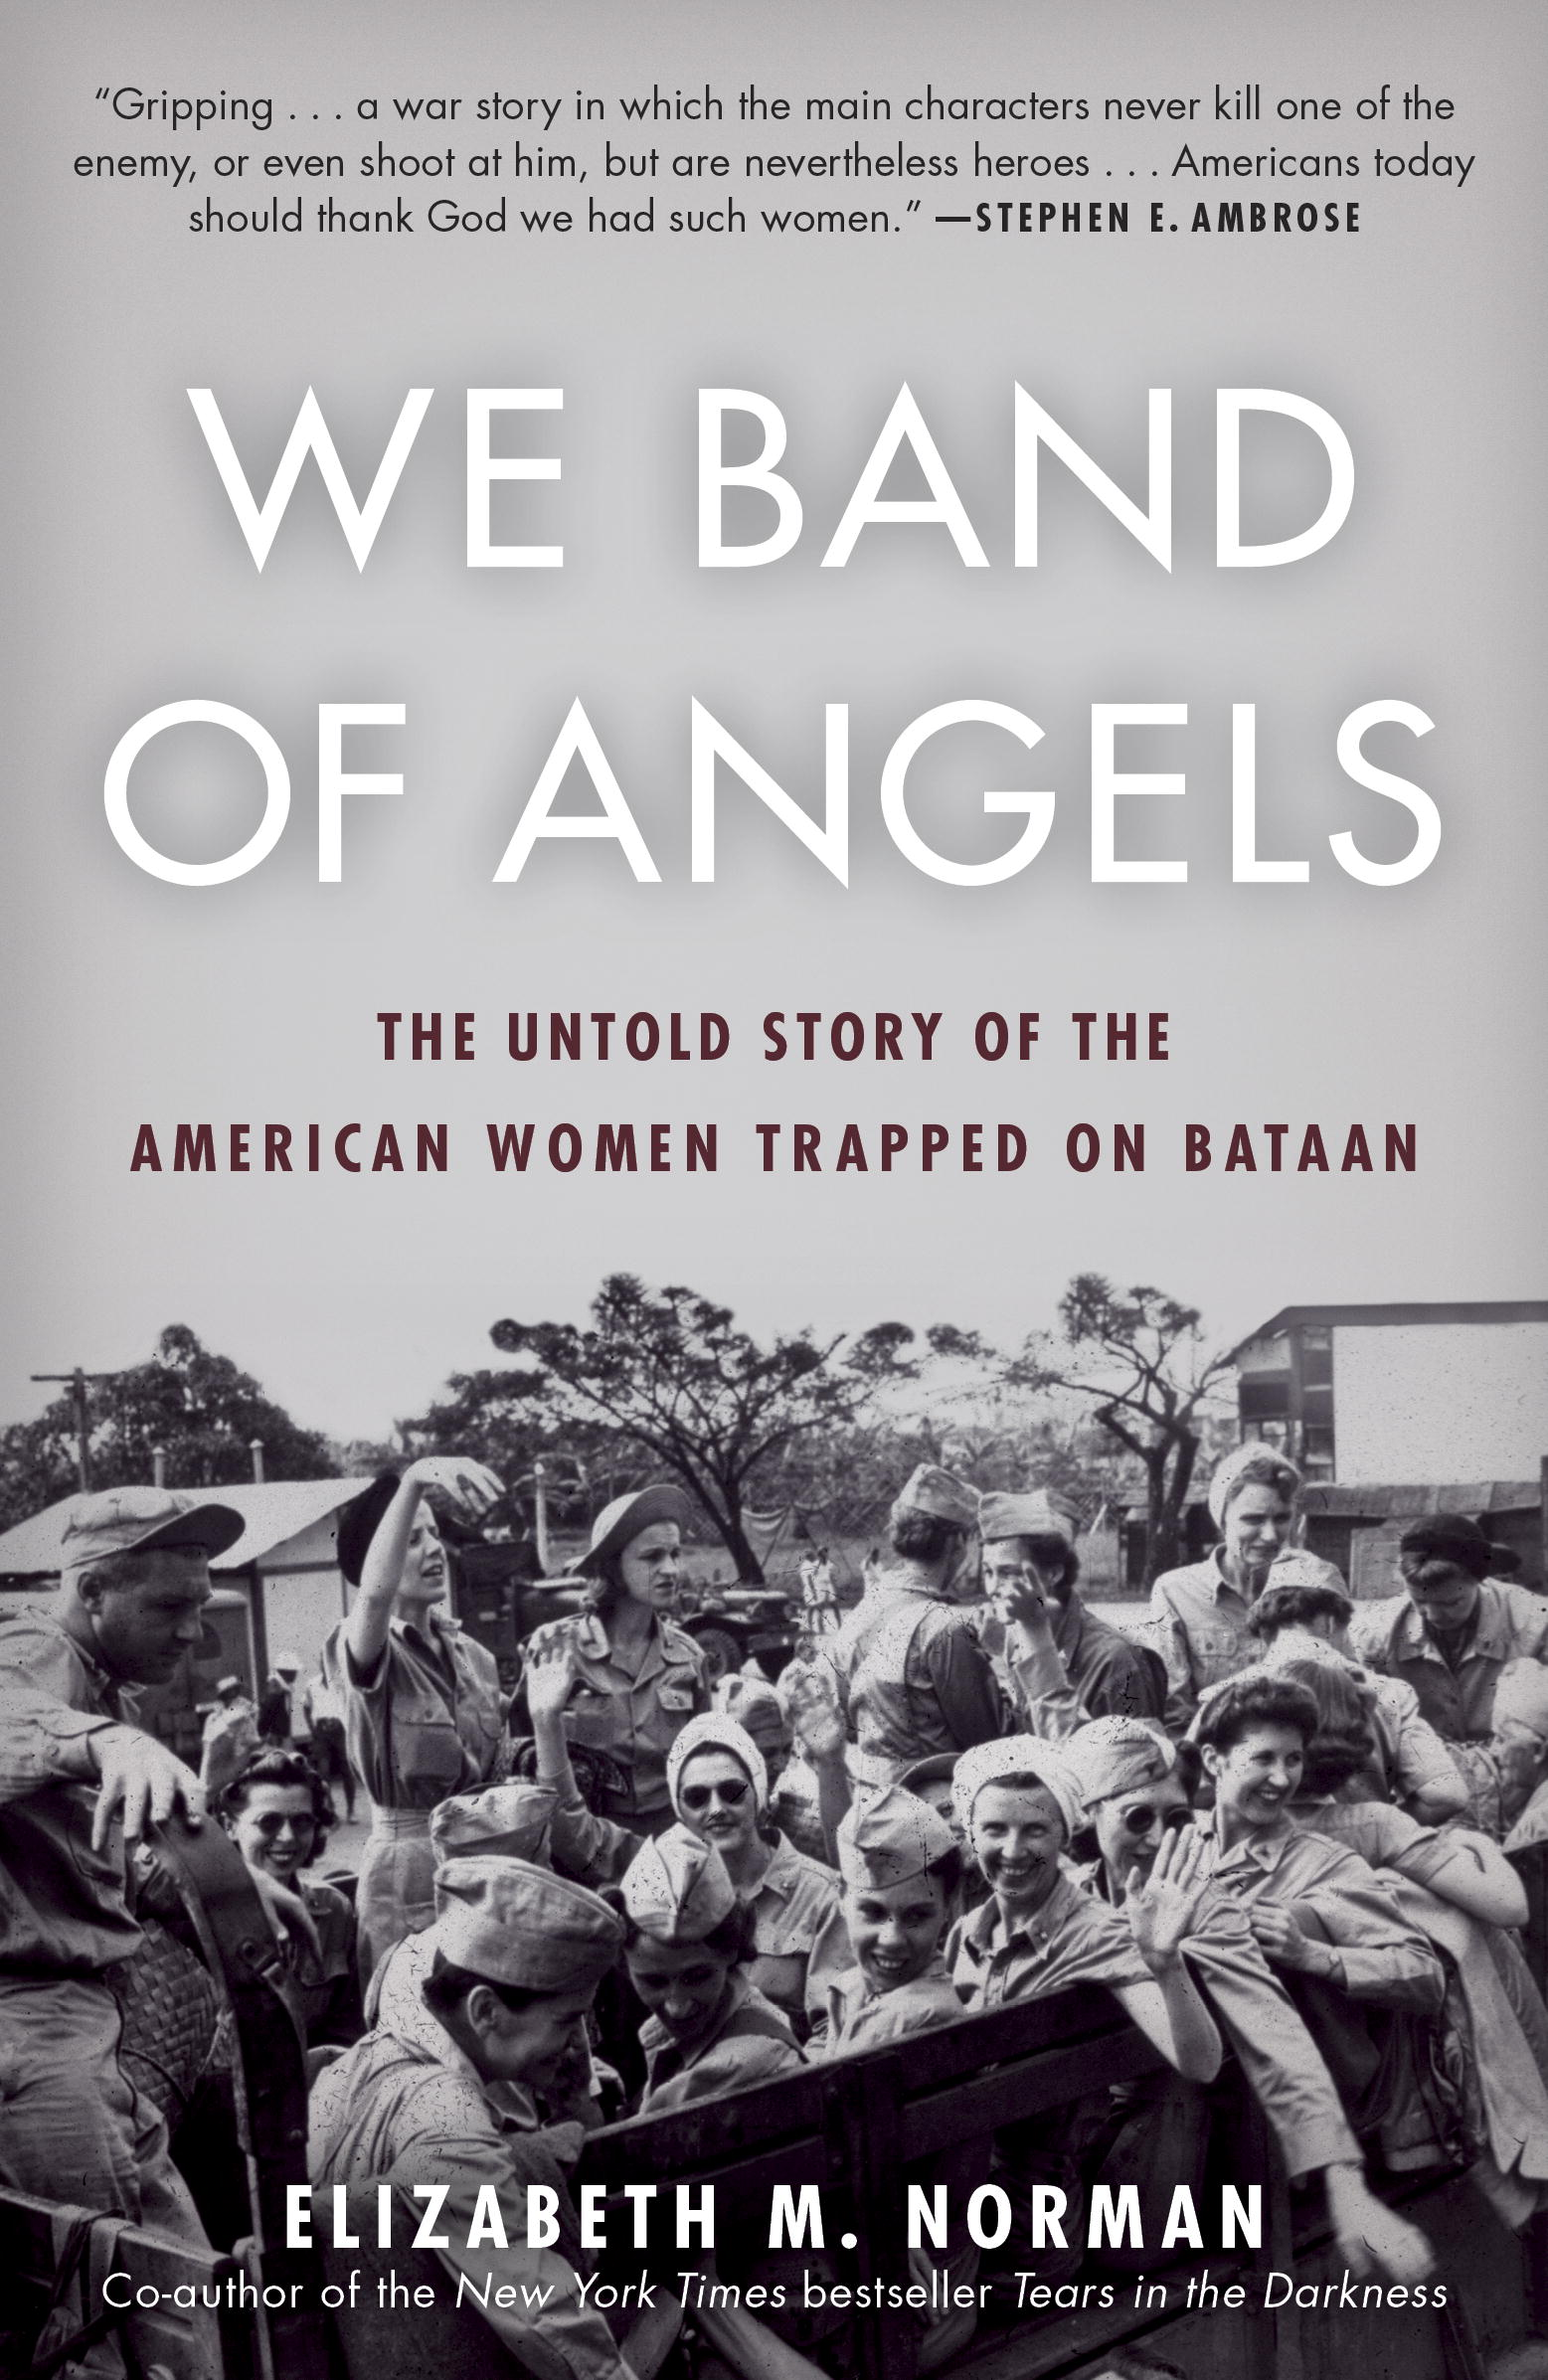 We Band of Angels: The Untold Story of the Women Trapped on Bataan